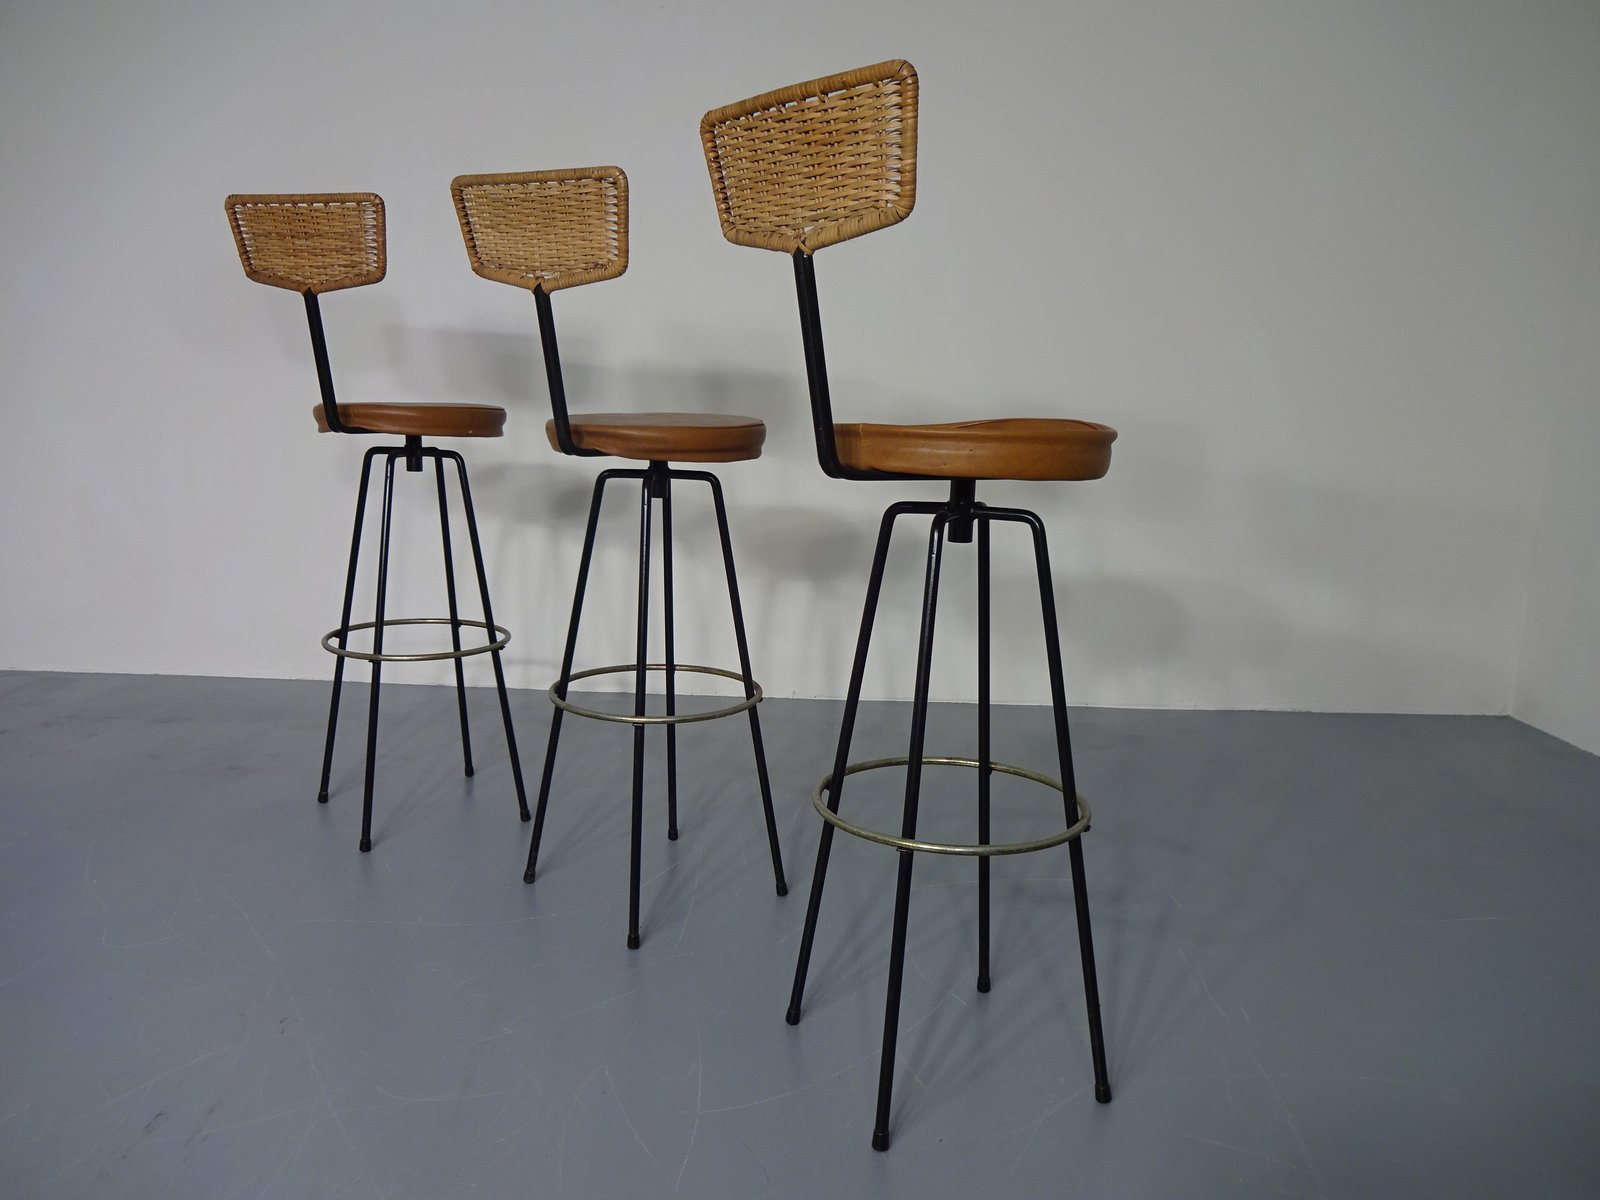 Rotatable Rattan Barstools 1960s Set Of 3 For Sale At Pamono